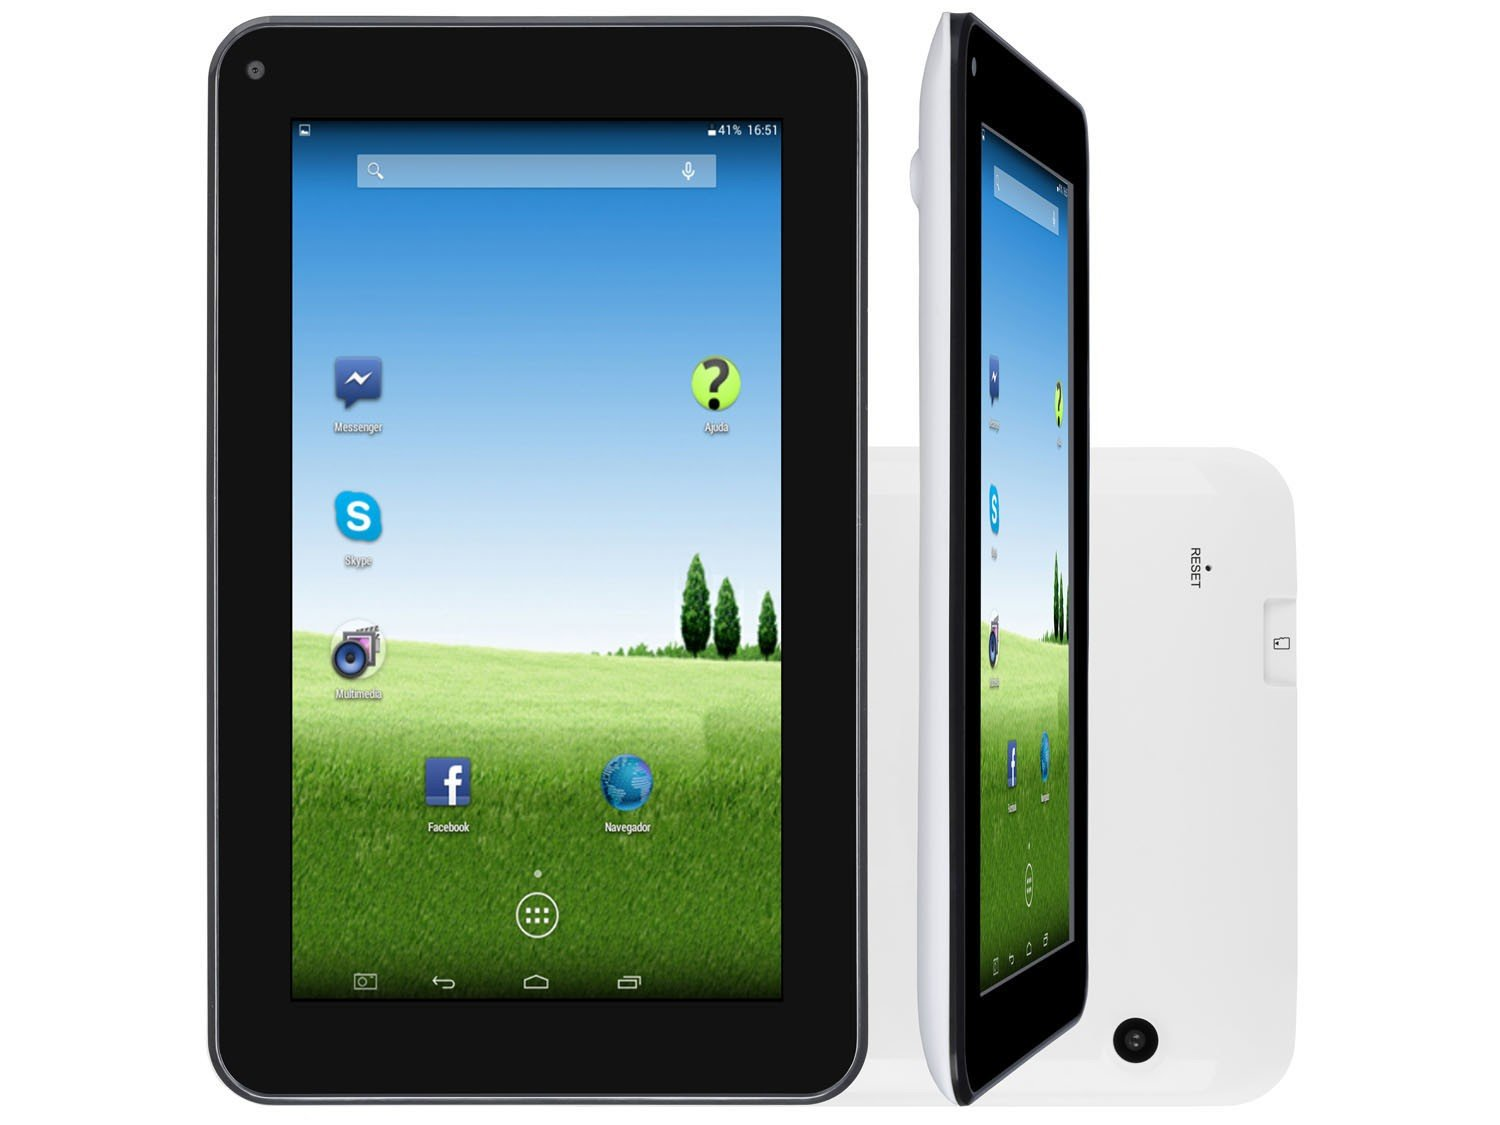 Foto 6 - Tablet DL e-Volution S 8GB 7 Wi-Fi Android 4.4 - Proc. Dual Core Câmera Integrada